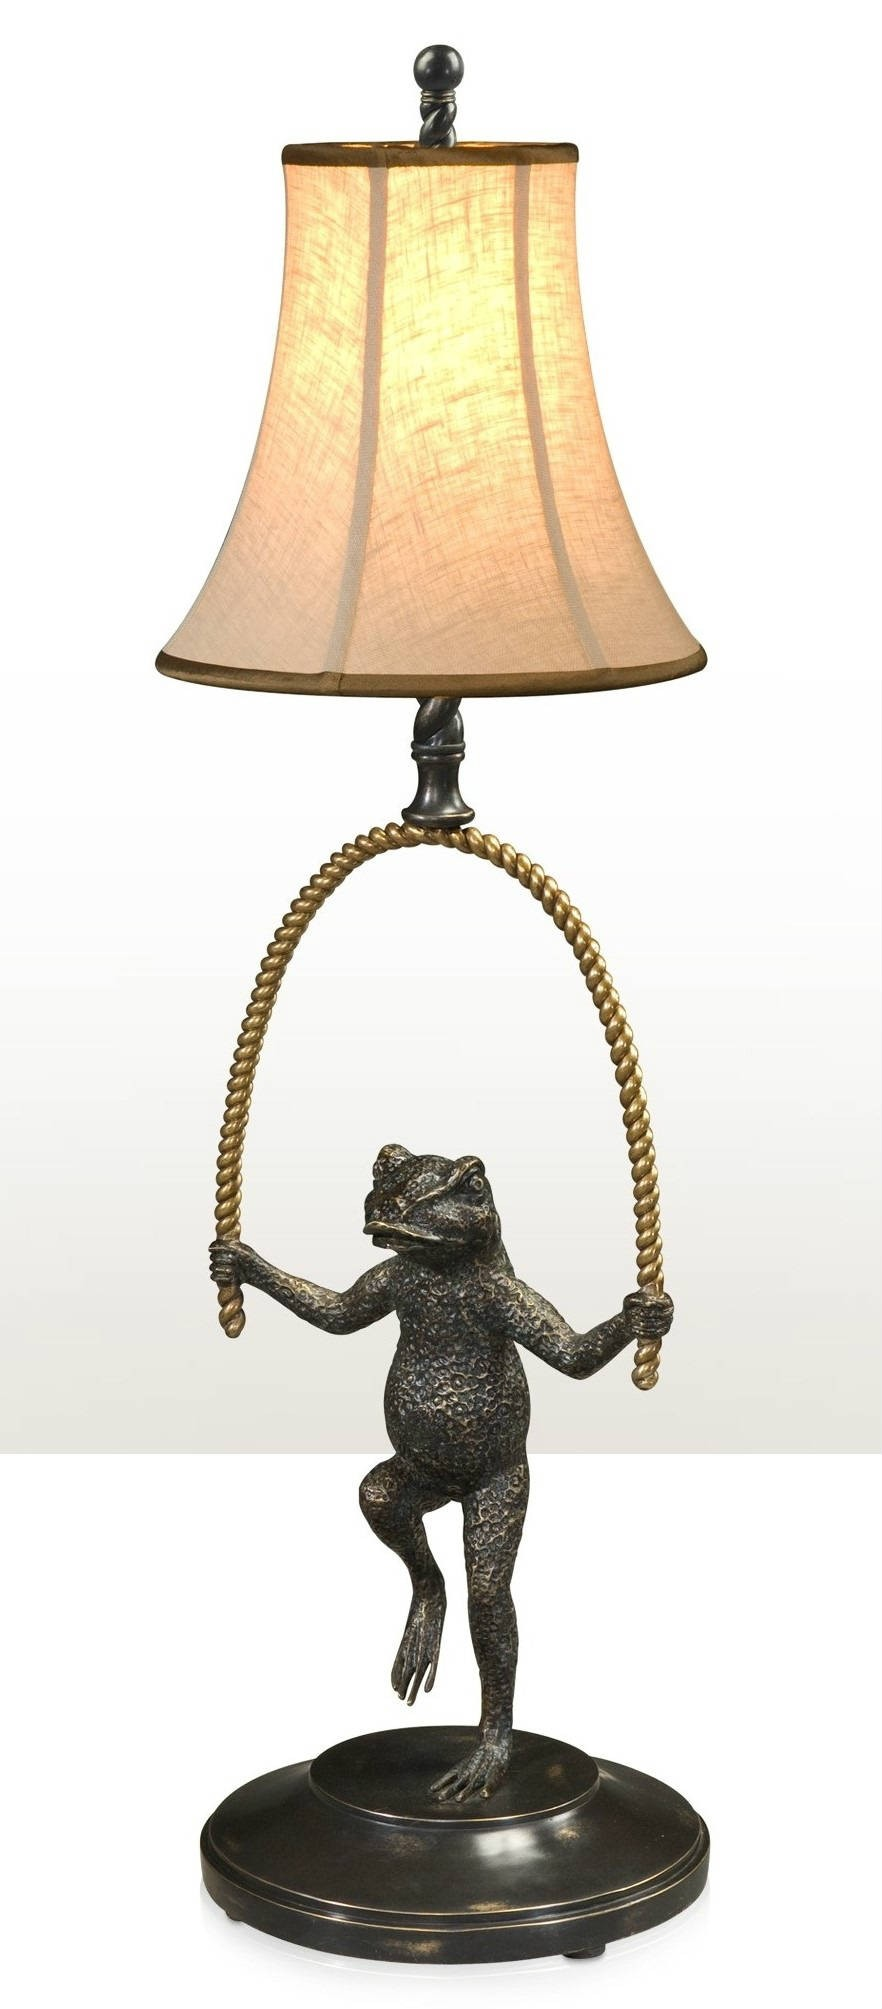 Verdigris brass frog table lamp, Table Lamps from Brights of Nettlebed